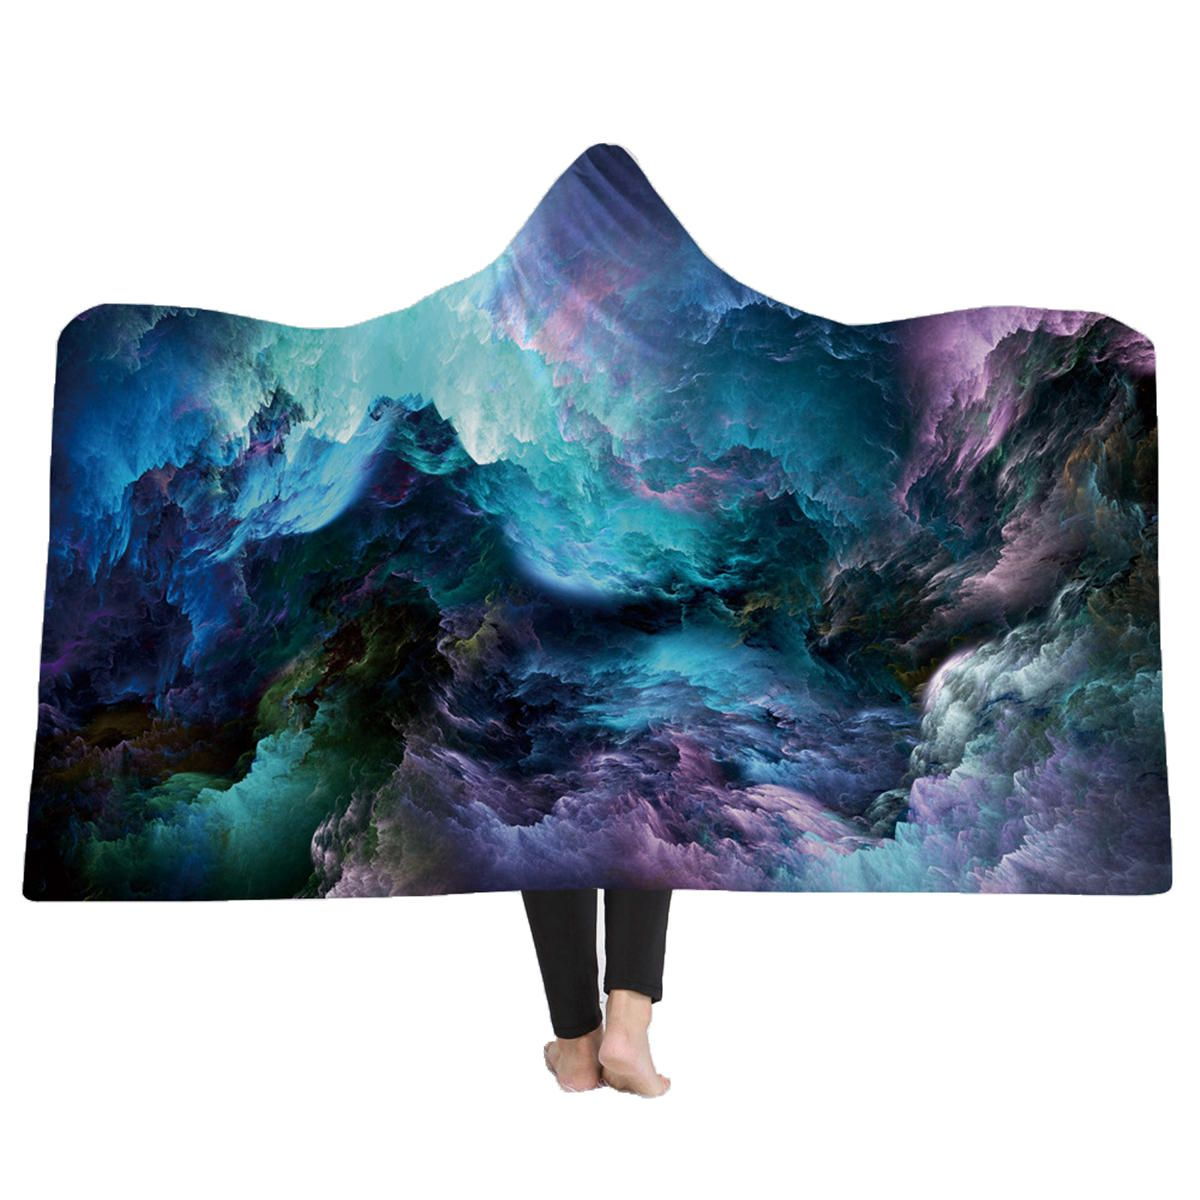 SCY US$34.32 150x200CM 3D Colorful Printed Hooded Blankets Warm Wearable Plush Mats Thick Nap